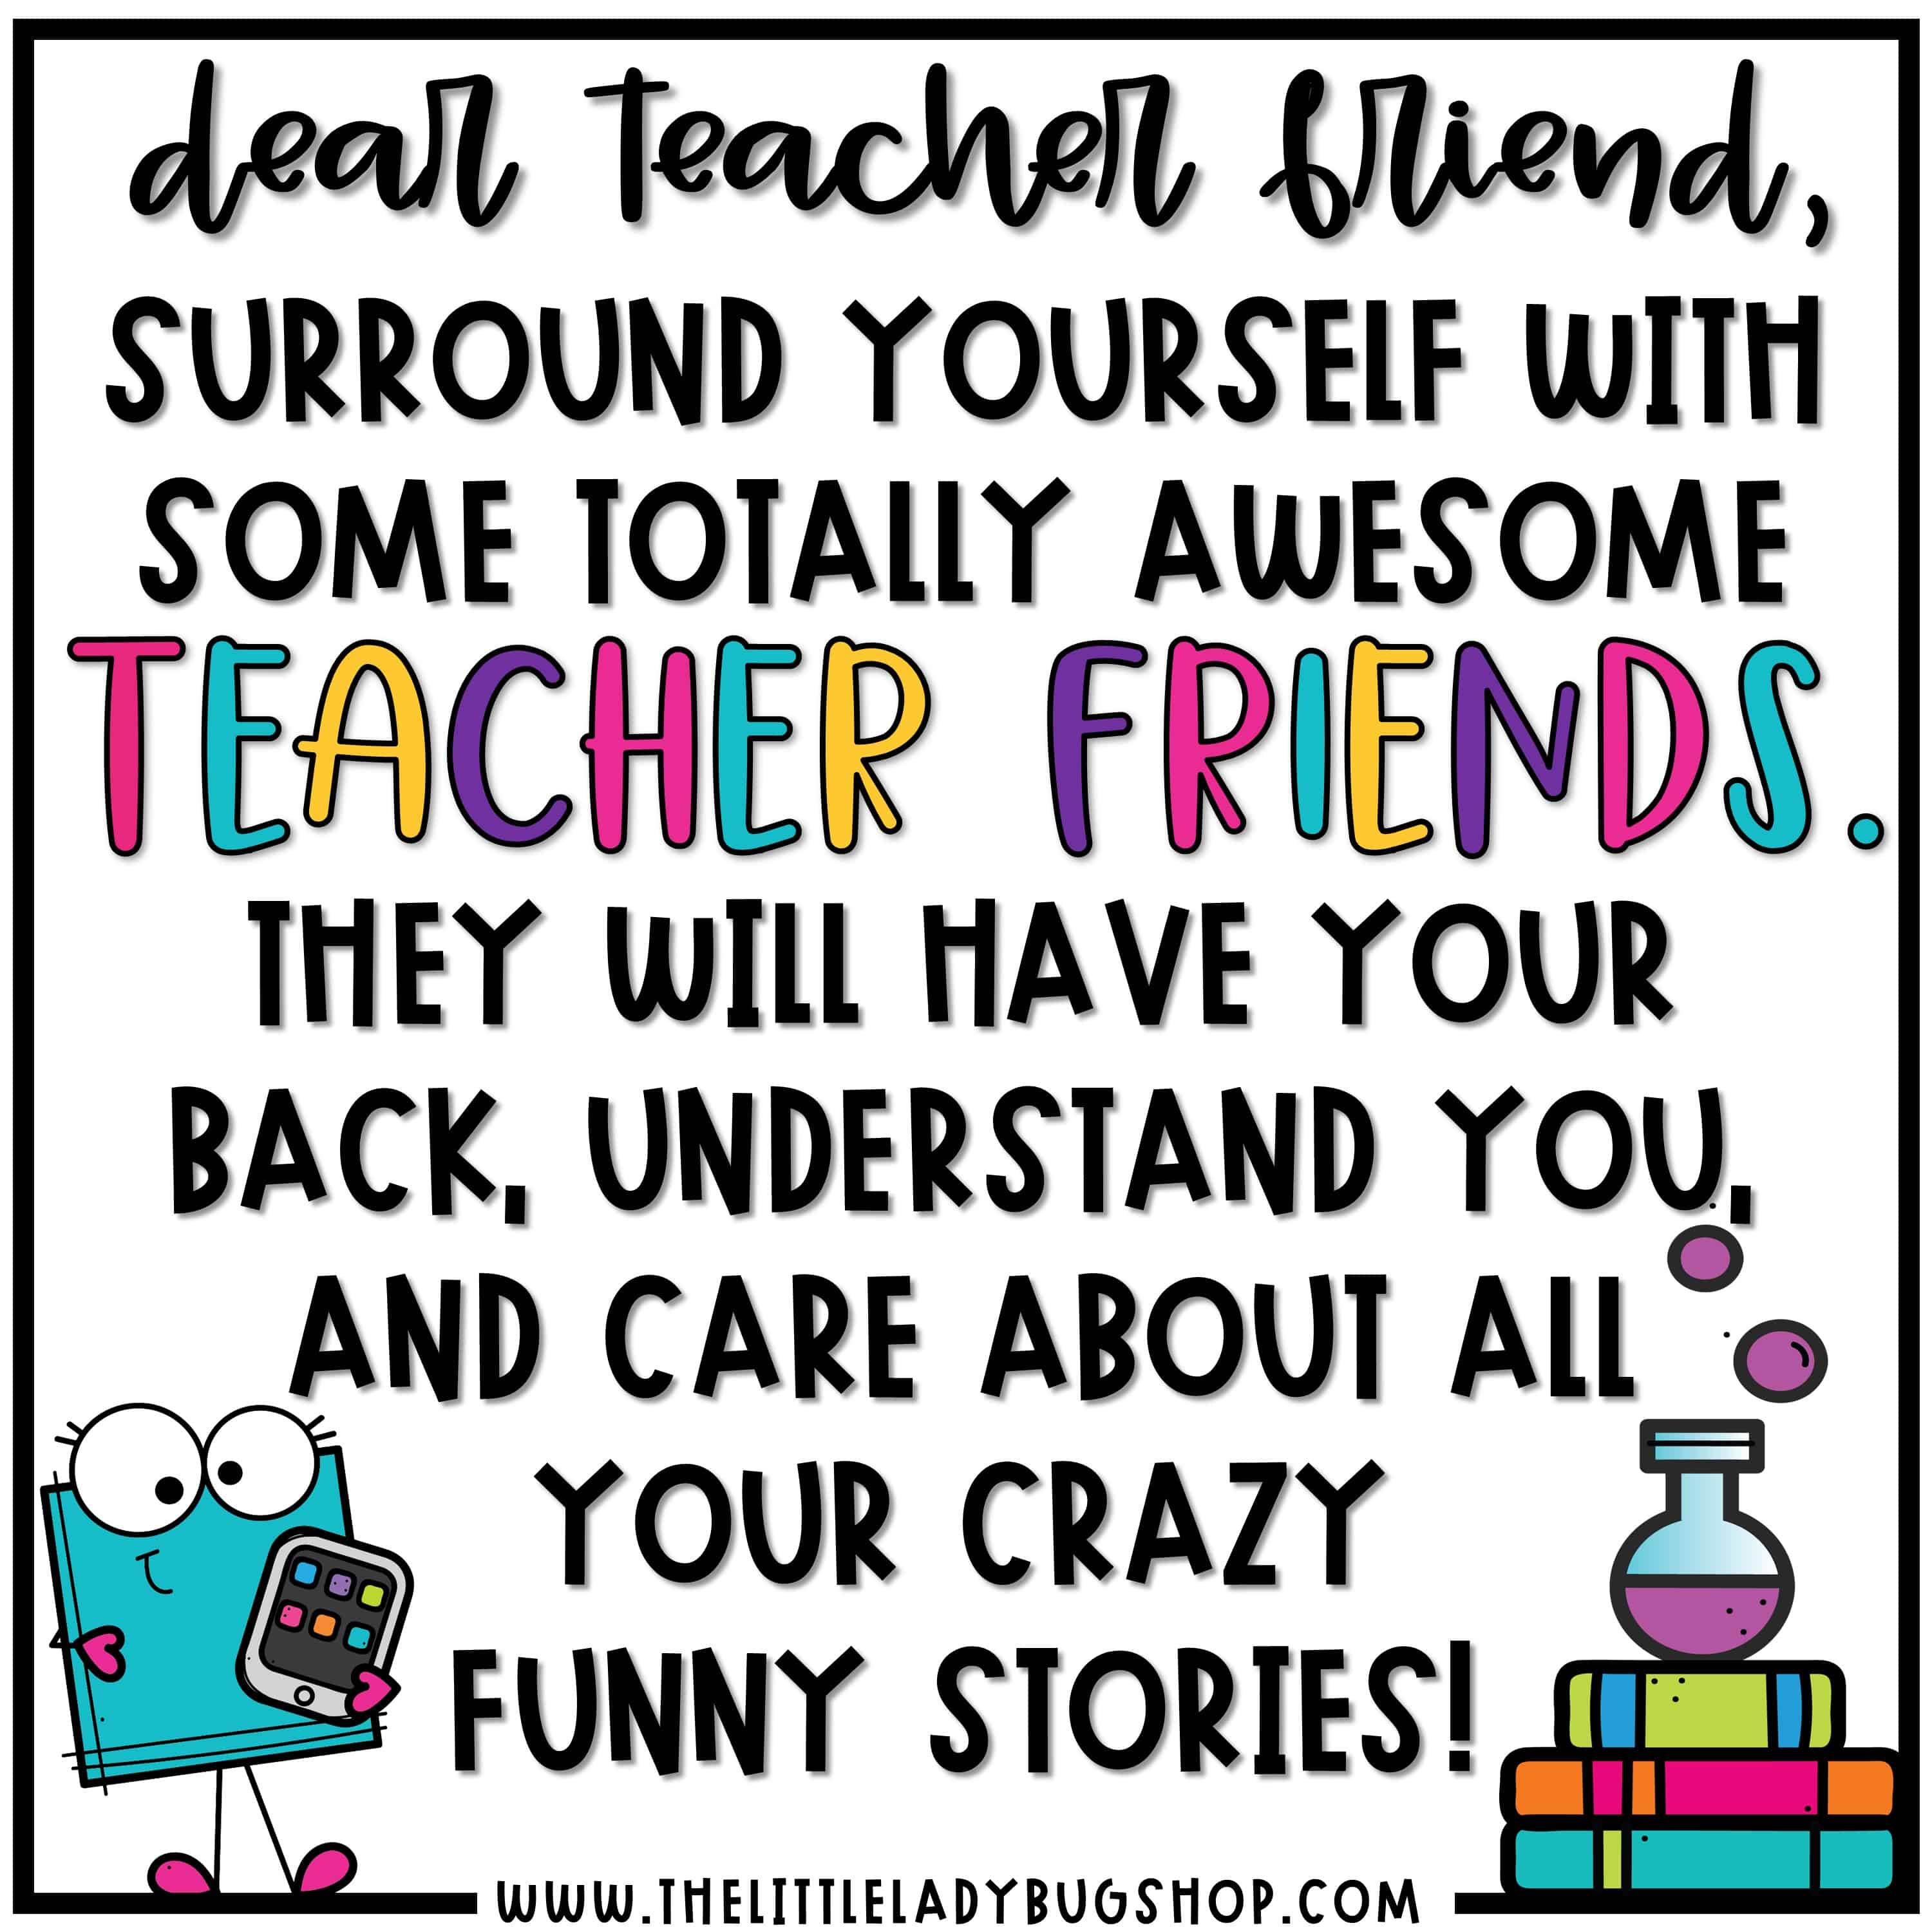 Dear Teacher Friend, having a great team of teachers